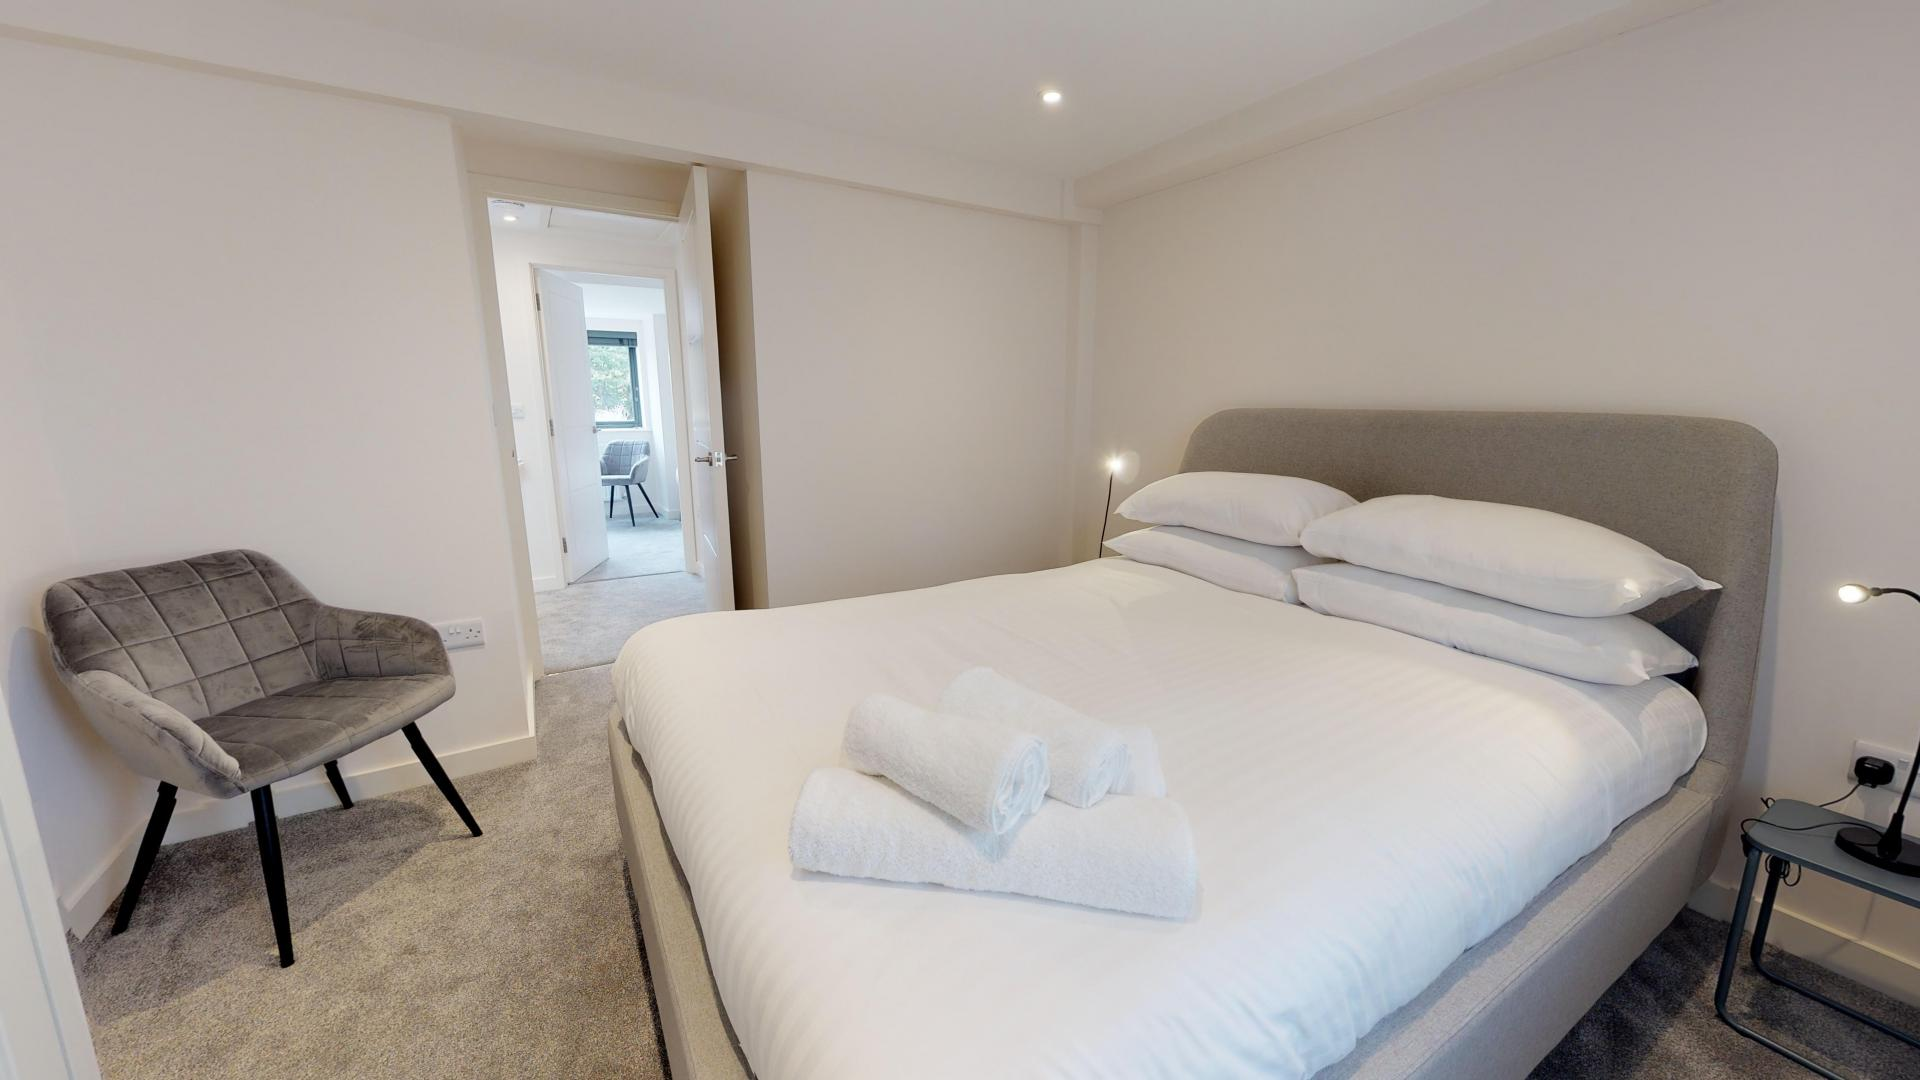 Bedroom at Rogers Street House, Summertown, Oxford - Citybase Apartments